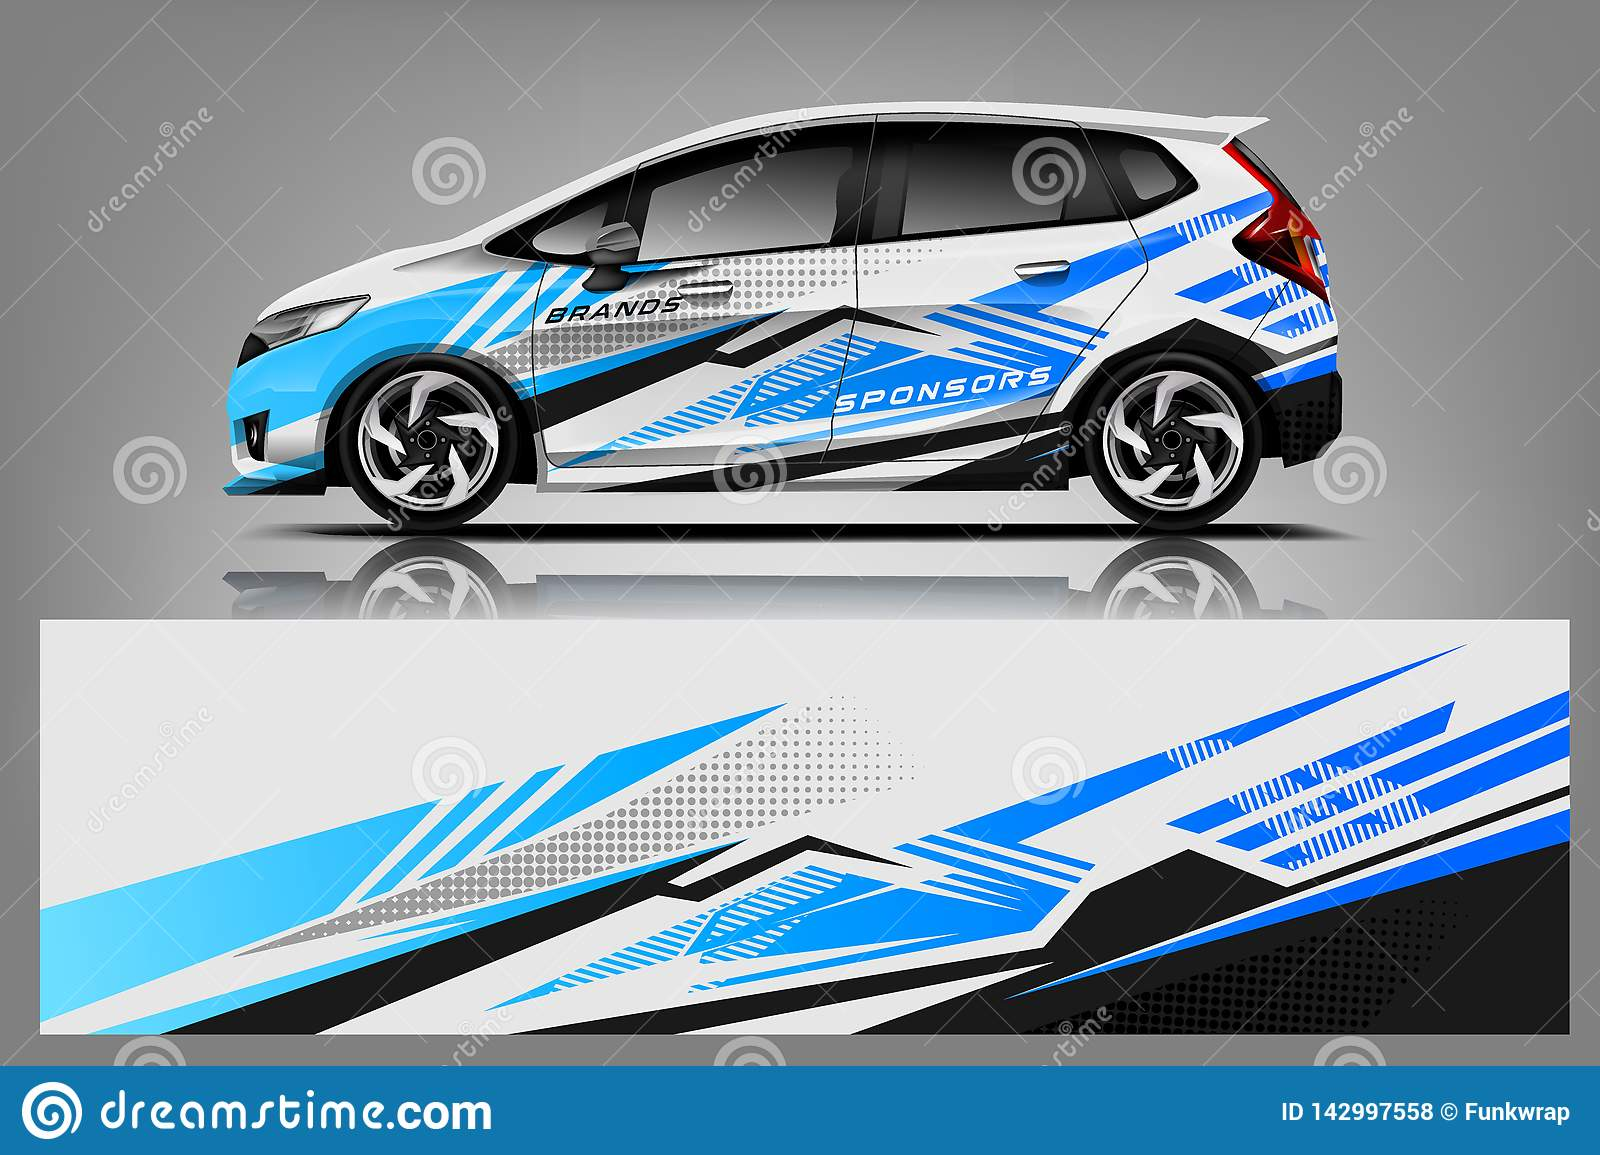 Car decal wrap design graphic abstract stripe racing background kit designs for vehicle race